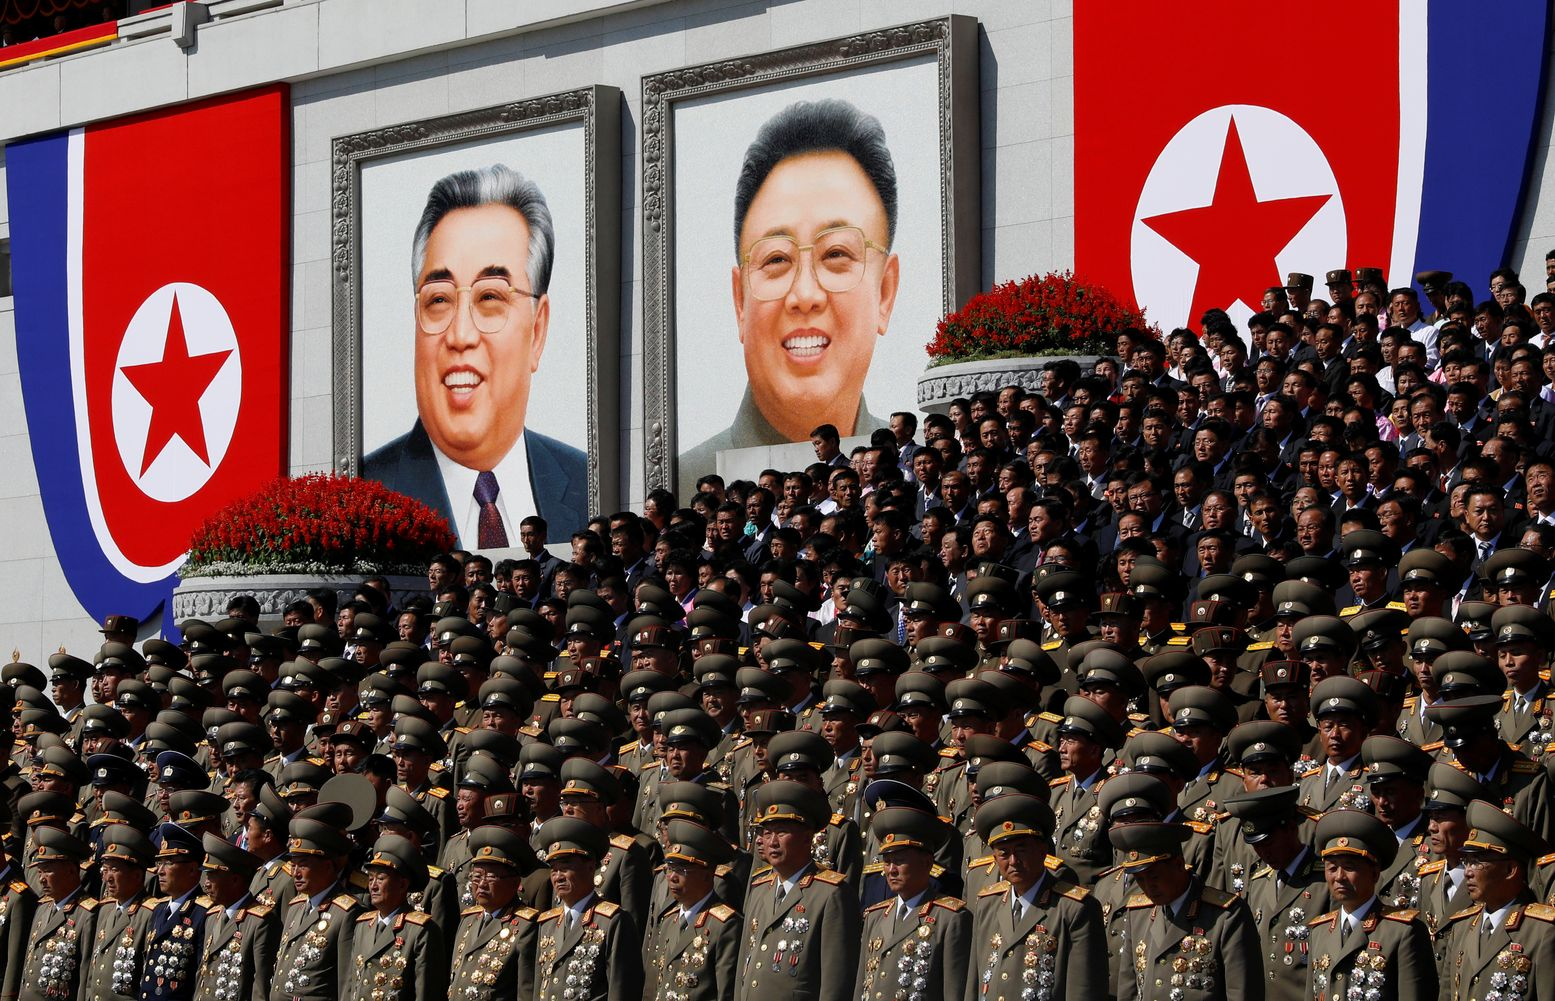 Could the U.S. Army Fight One Million North Korean Soldiers?